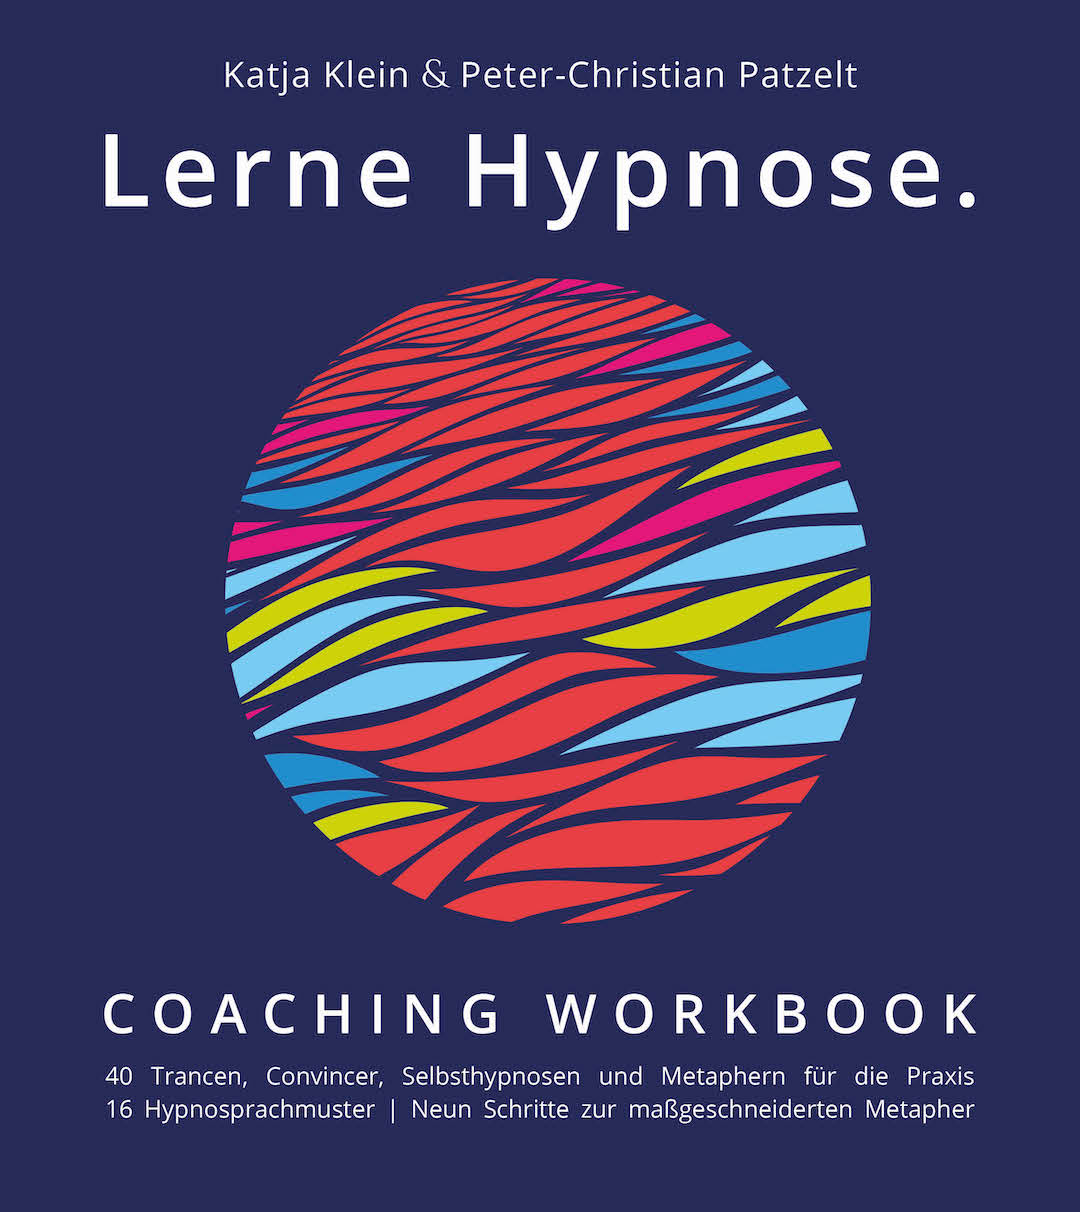 Lerne Hypnose, Coaching Workbook, Buchcover